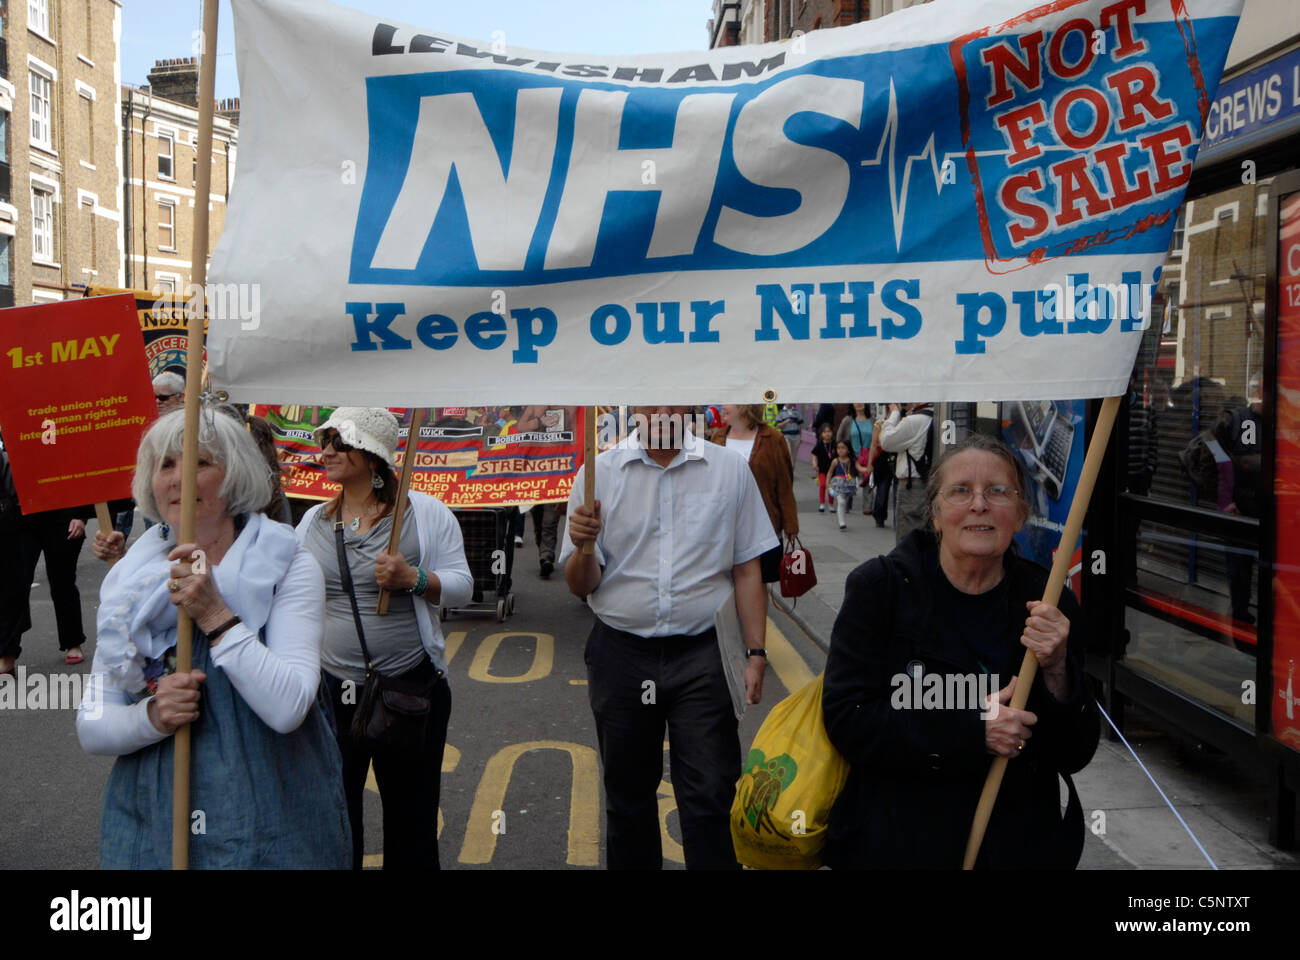 NHS WORKERS IN DEMONSTRATION AGAINST PUBLIC SPENDING CUTS - Stock Image